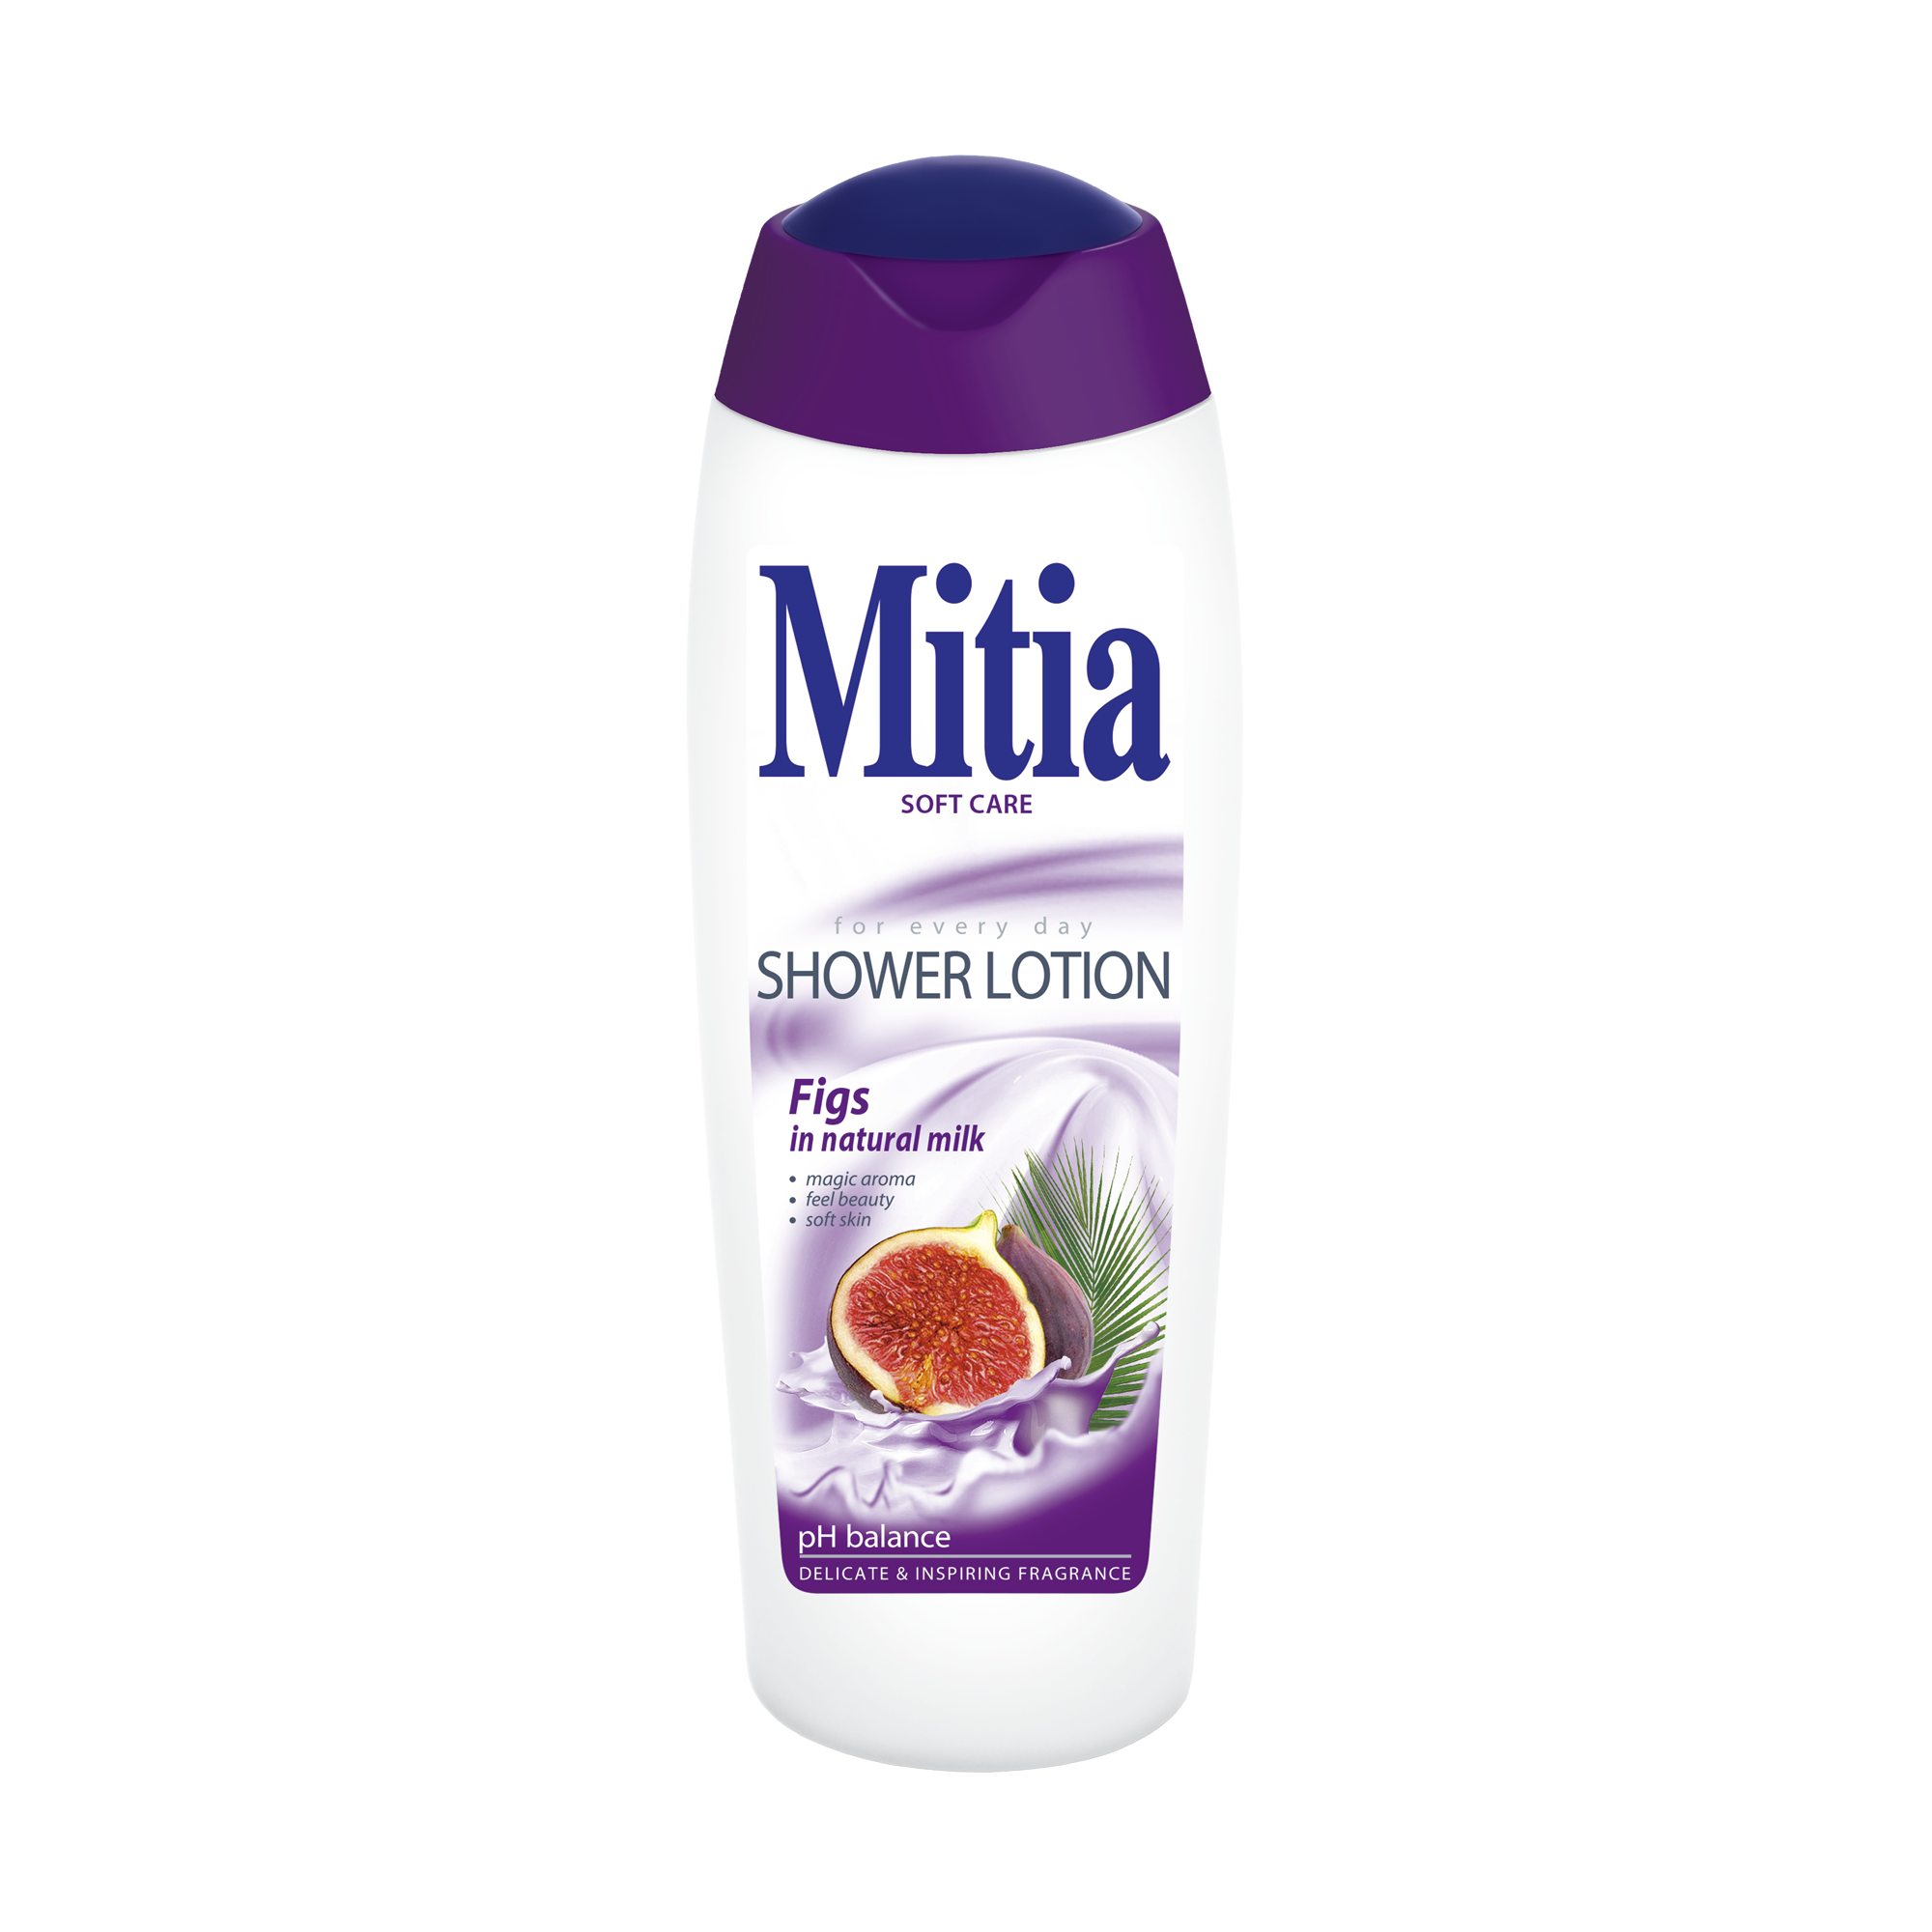 Mitia Figs in natural milk shower milk